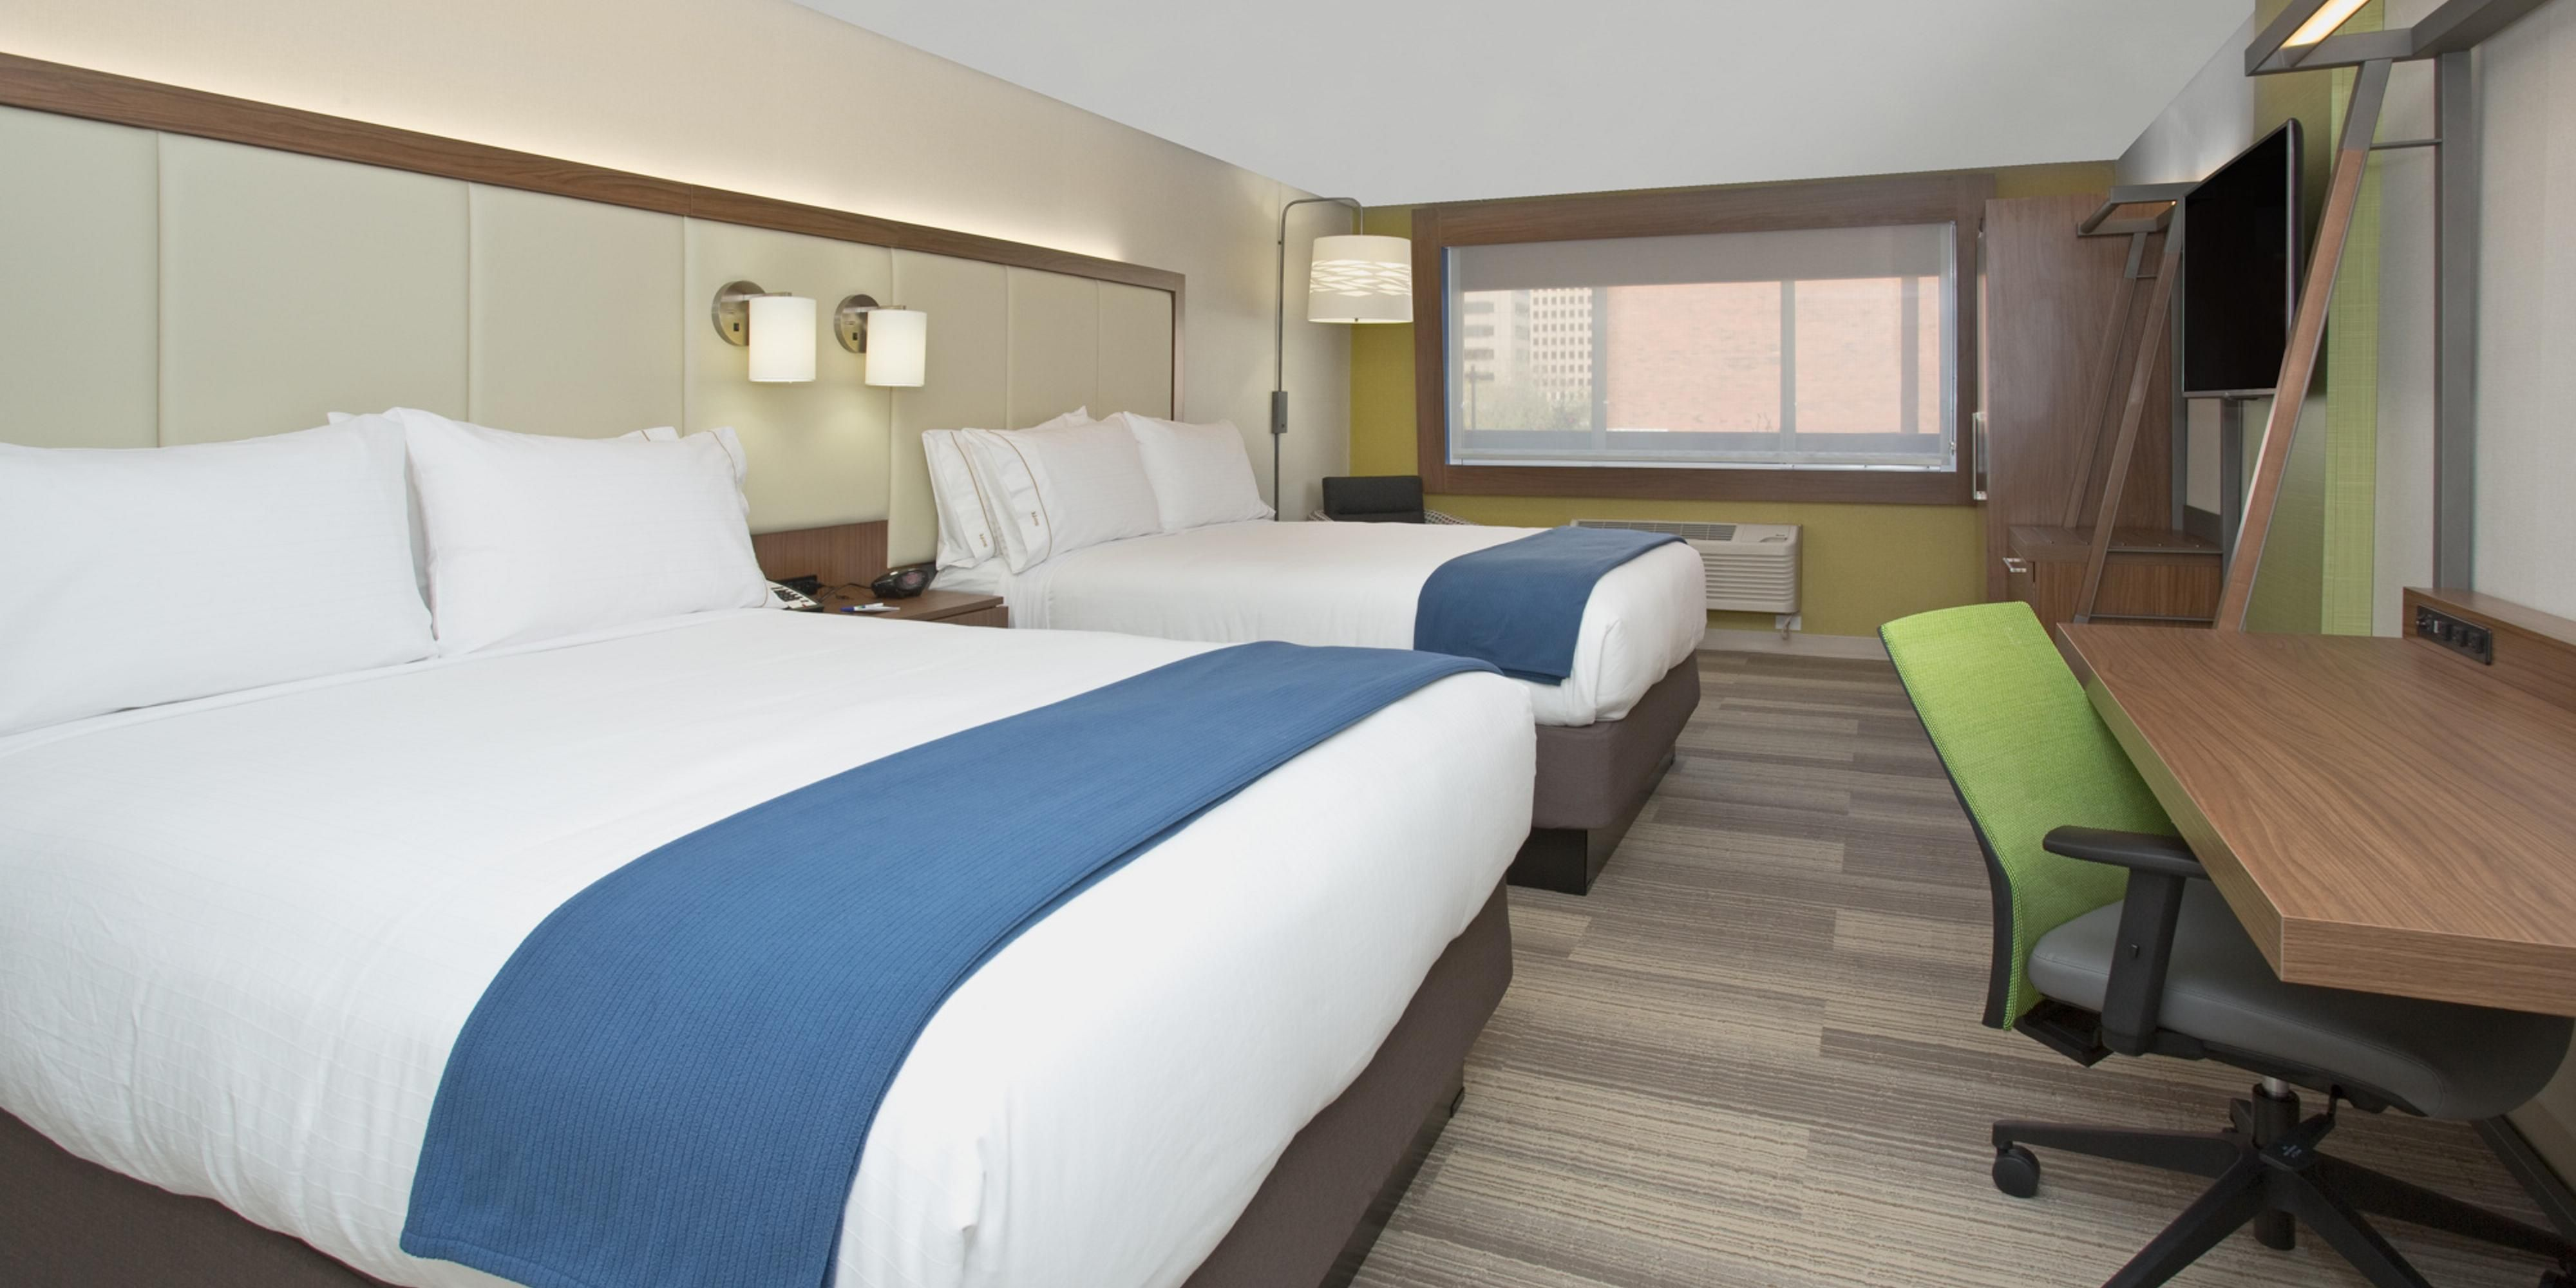 Holiday Inn Express & Suites Atchison Hotel by IHG